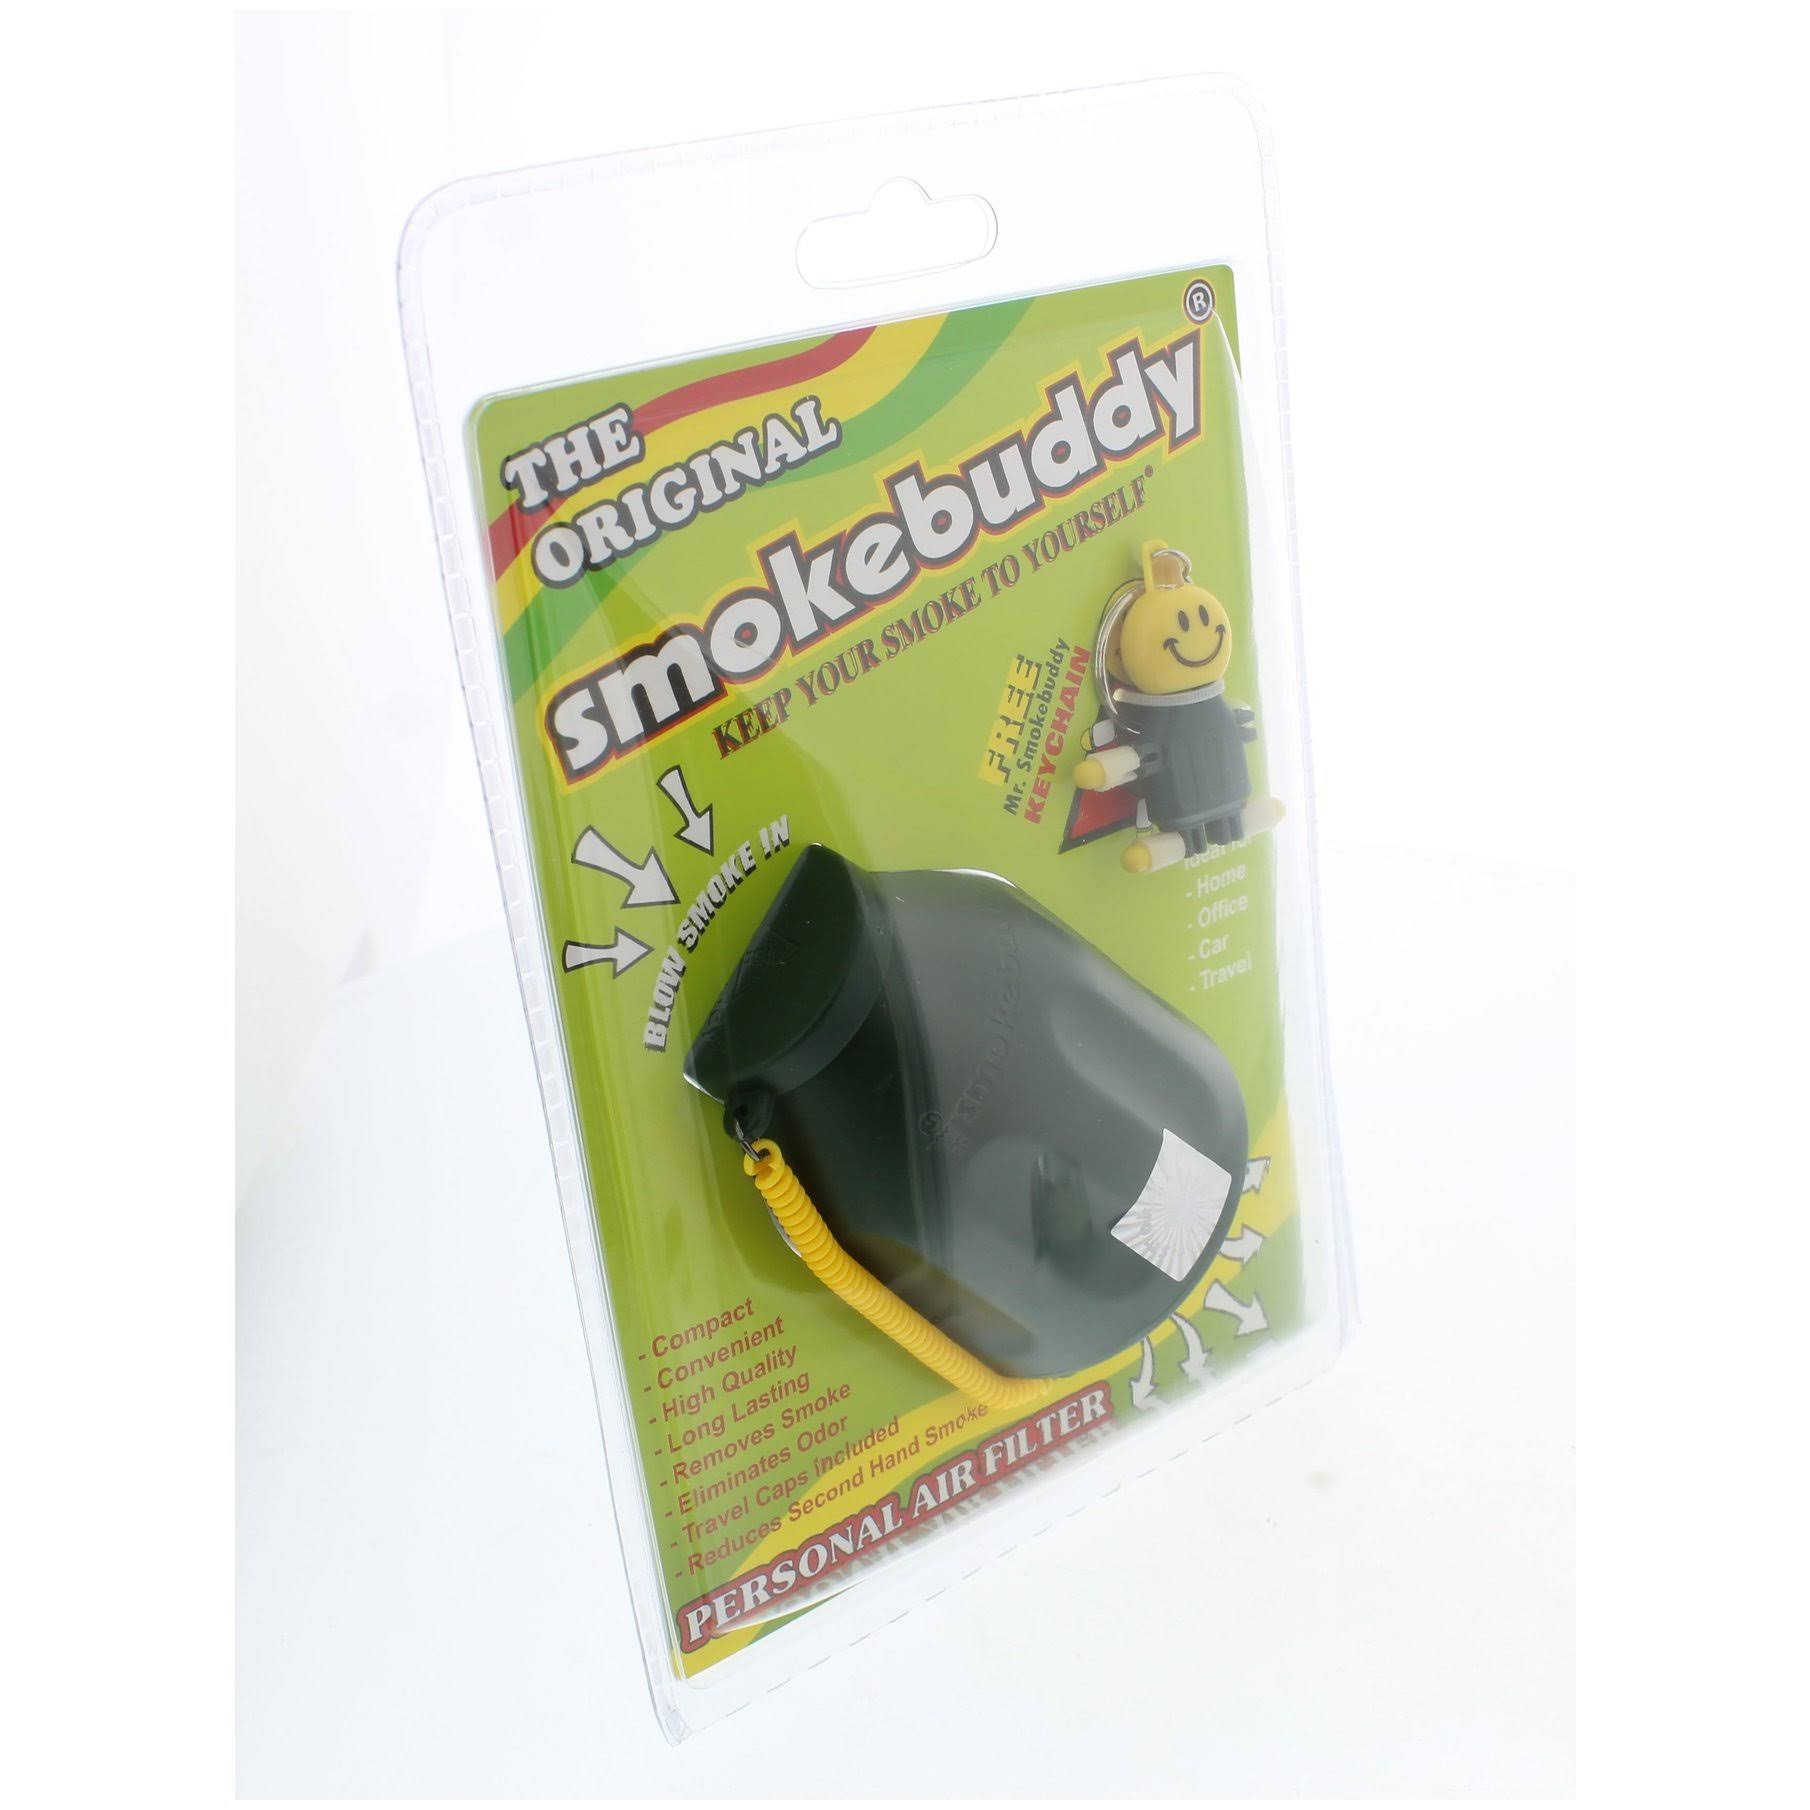 Smokebuddy Personal Air Filter Green